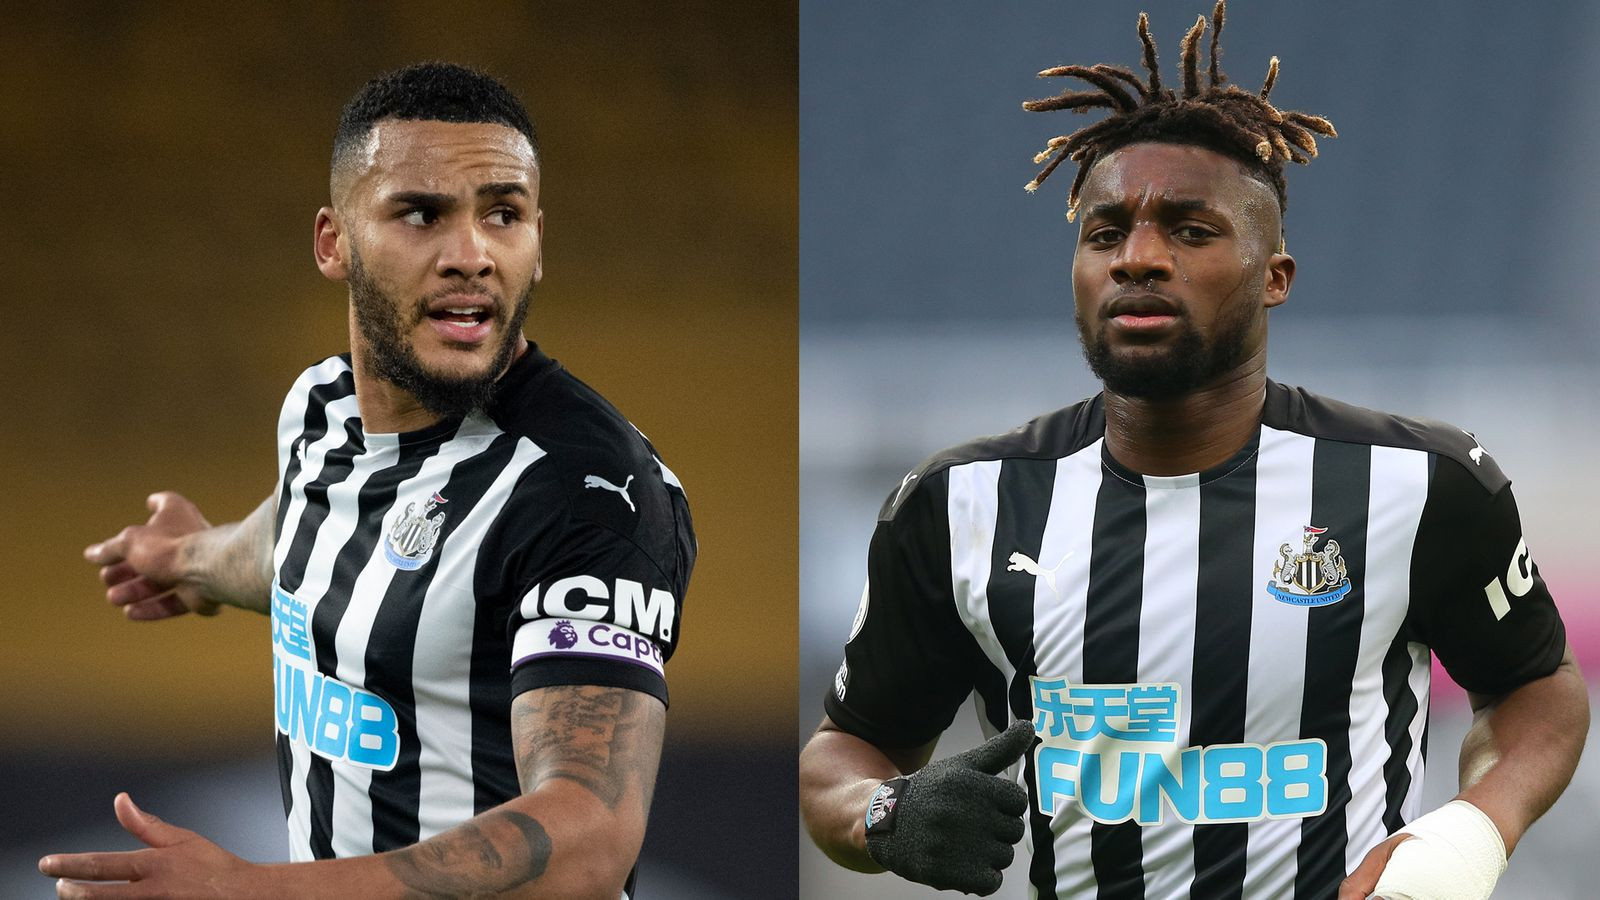 Newcastle stars, Jamaal Lascelles and Allan Saint-Maximin suffering long-term effects from Covid-19 and struggling to walk